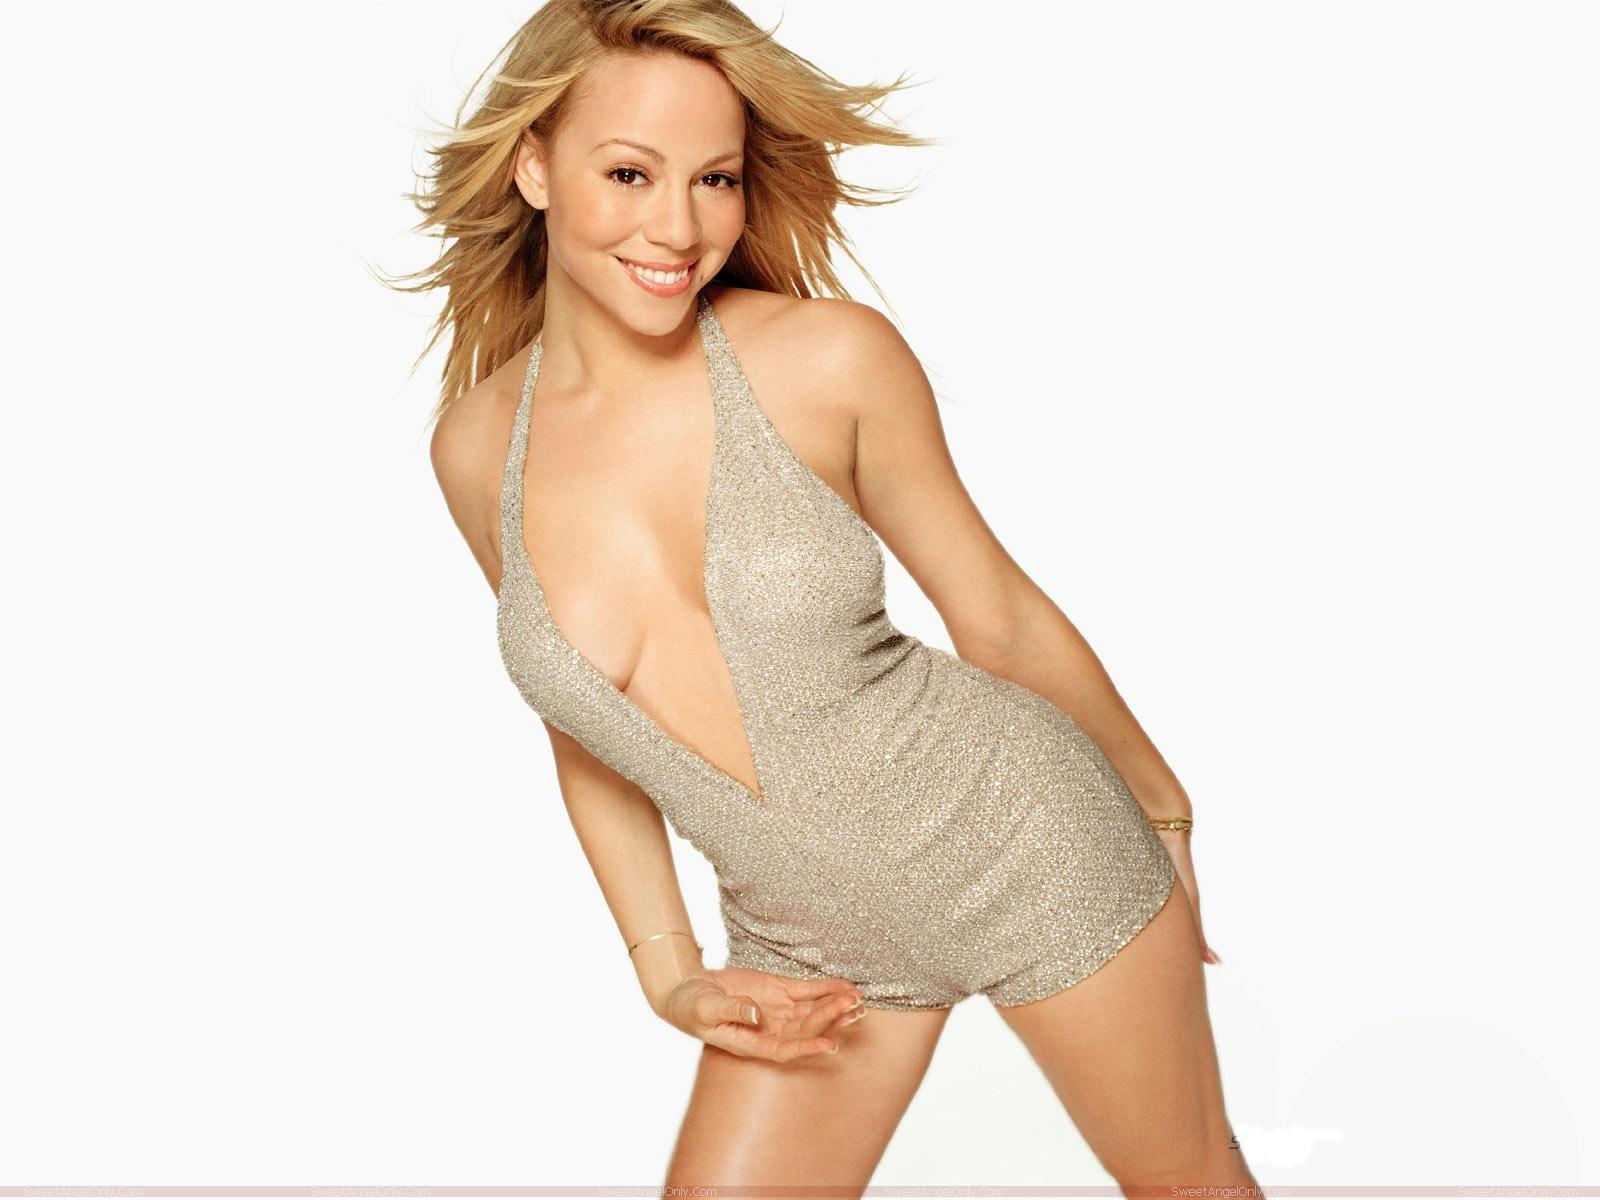 http://3.bp.blogspot.com/-C6q7IrznnYg/TY2k5GRLMTI/AAAAAAAAF88/_a1TnxaRk_A/s1600/mariah_carey_hollywood_hot_actress_wallpaper_sweetangelonly_03.jpg